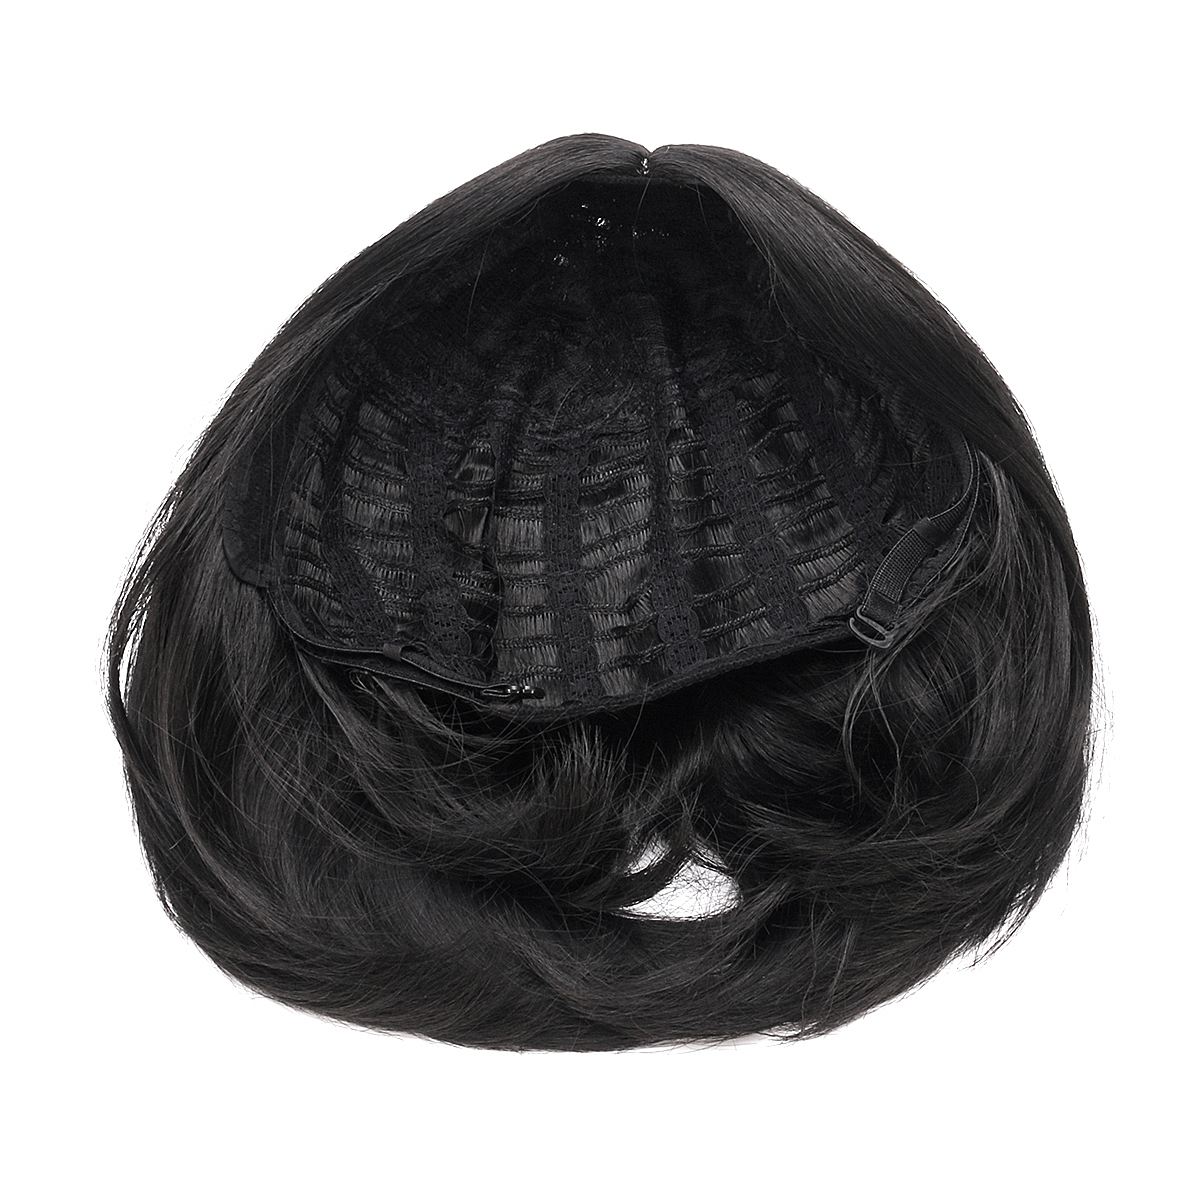 Ladies Short Hair Brazilian Bob Style Wig